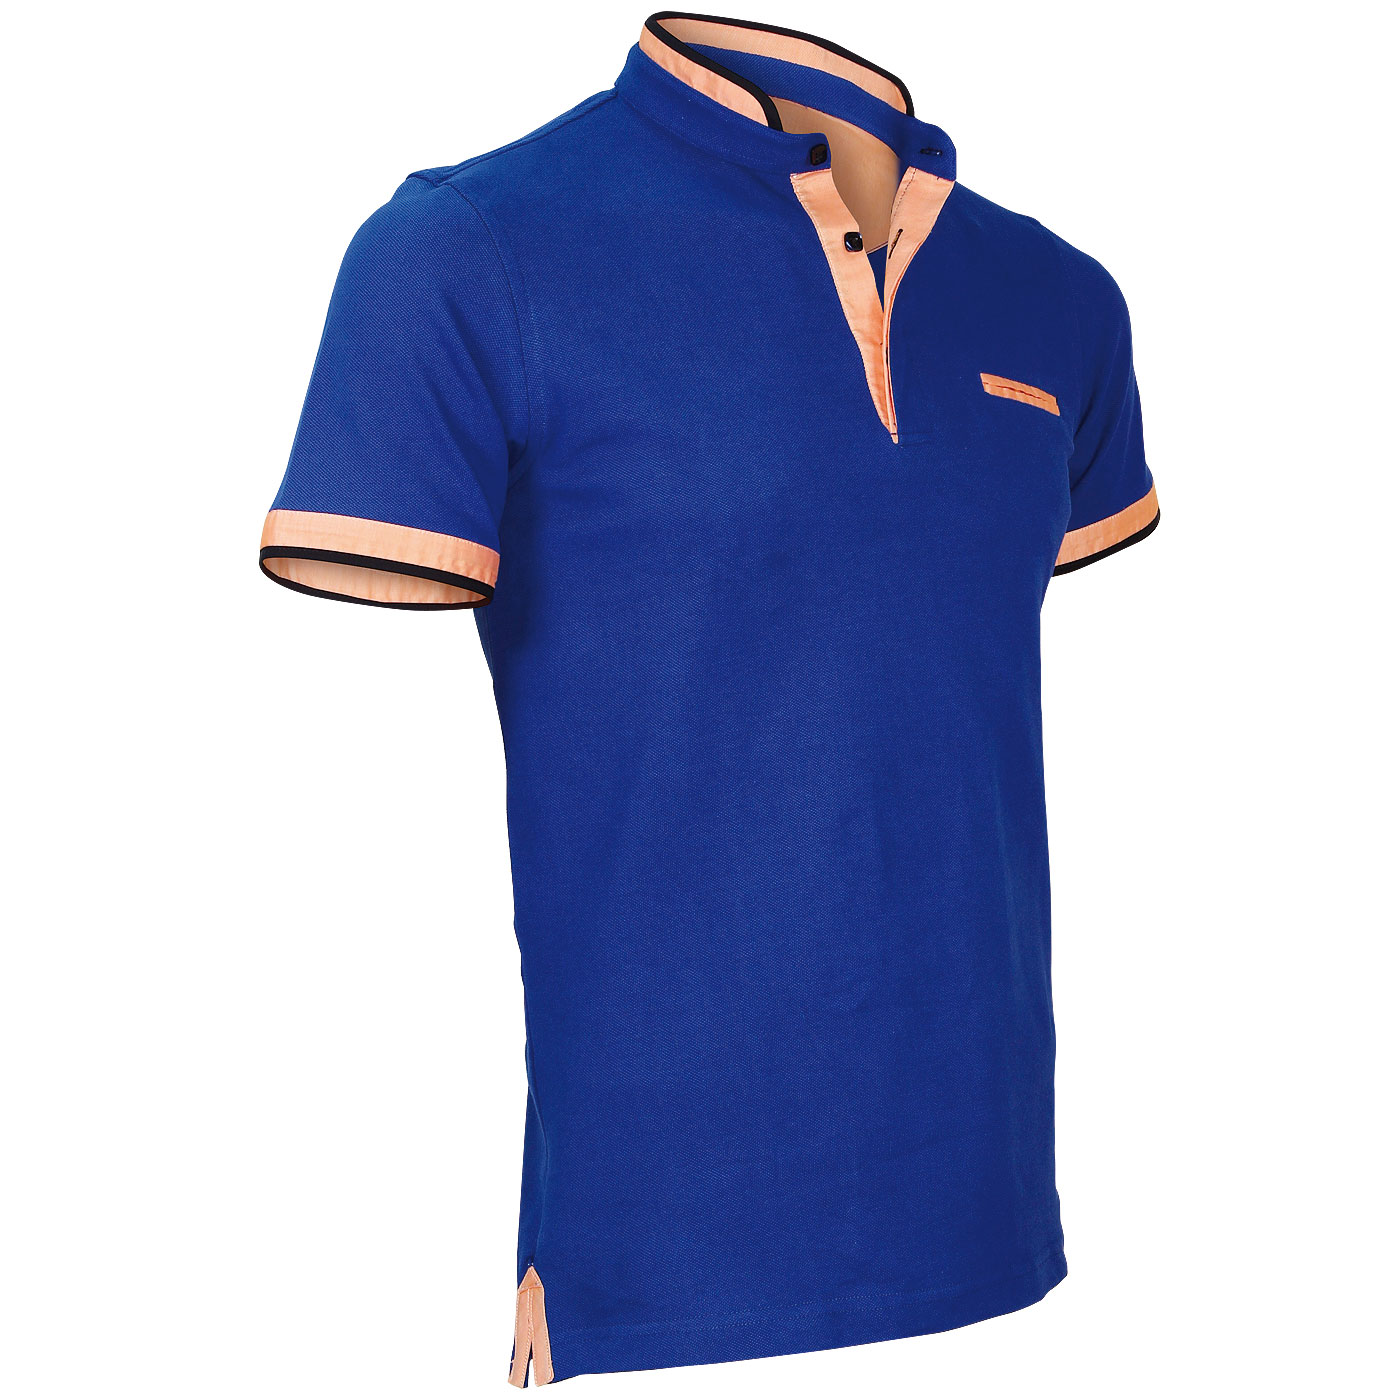 Men's T-Shirts & Polos Constitute your Summer Wardrobe